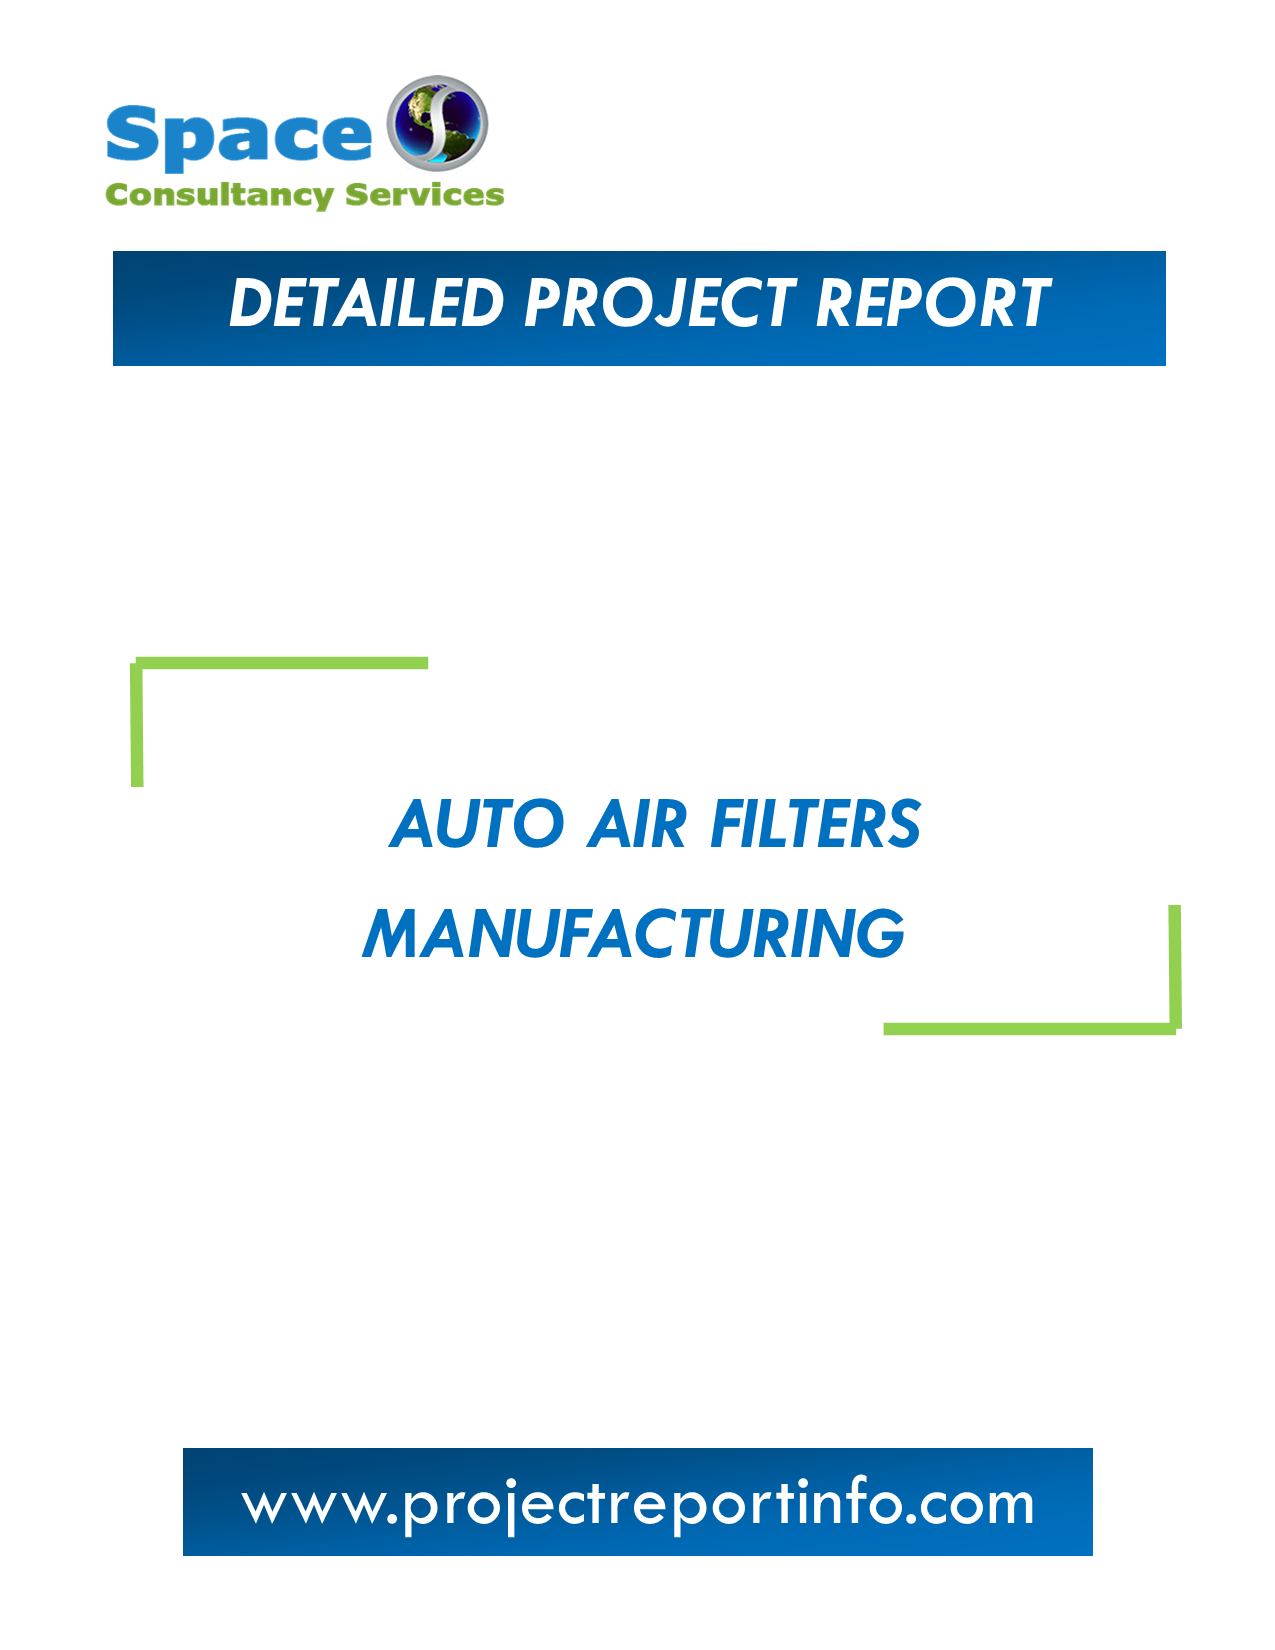 Auto Air Filters Project Report